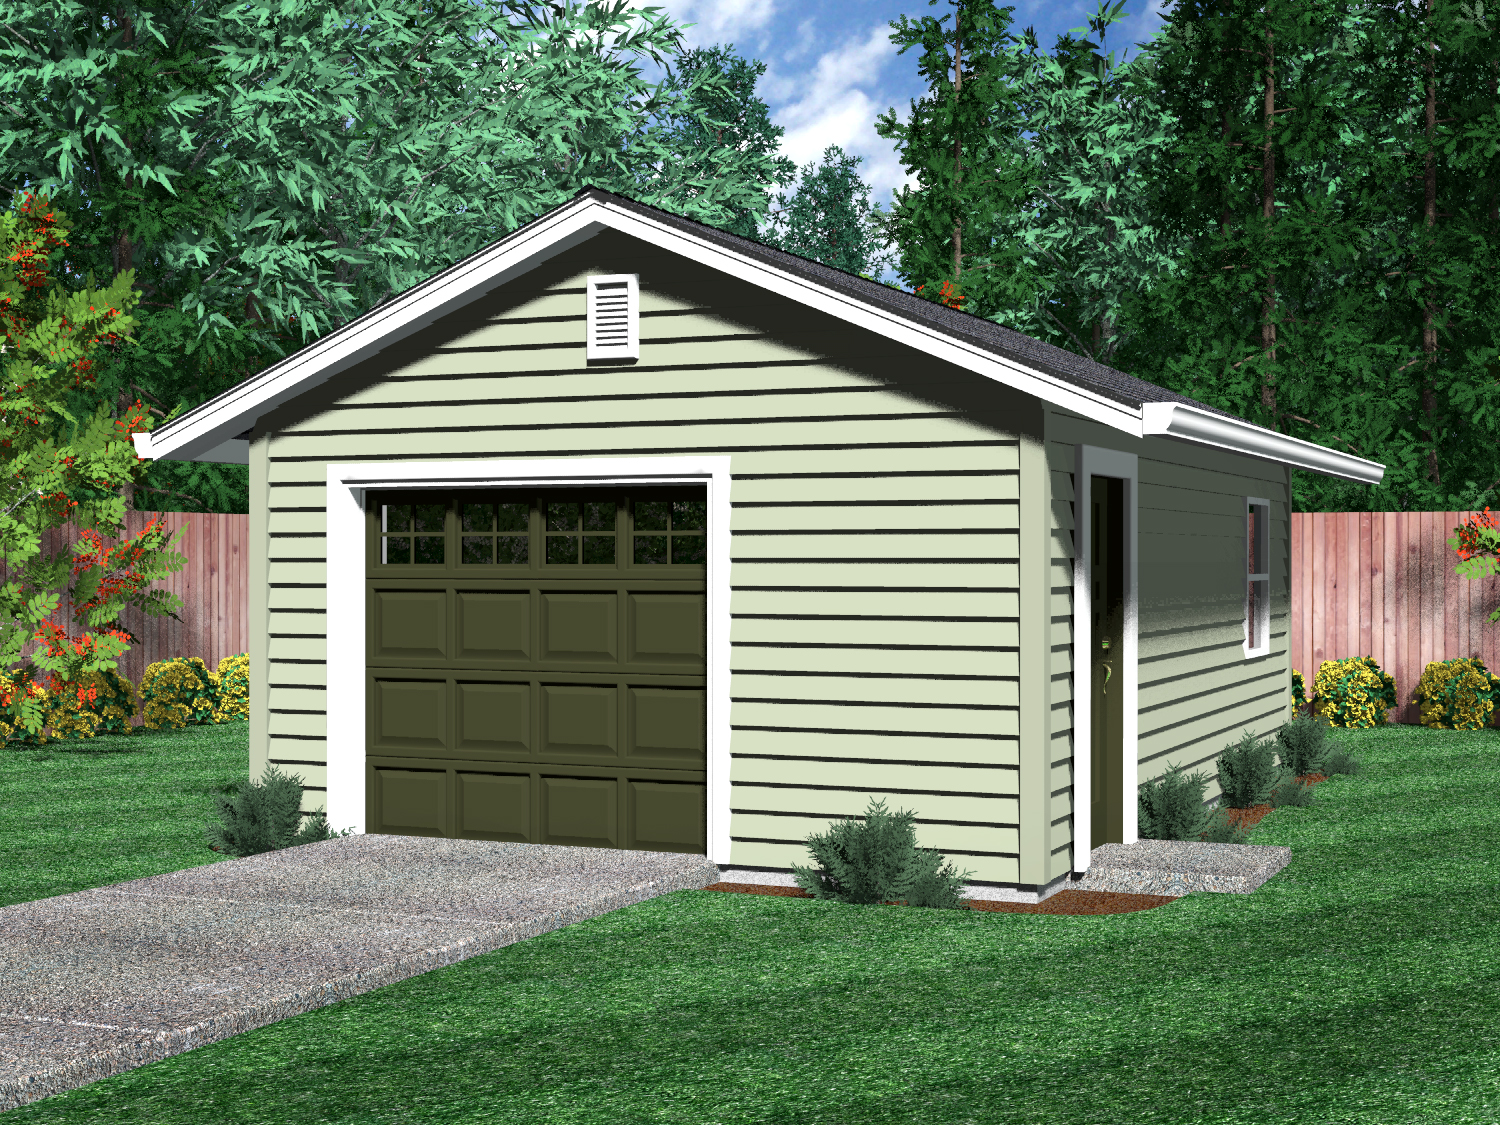 Detached Garage Floor Plans Free